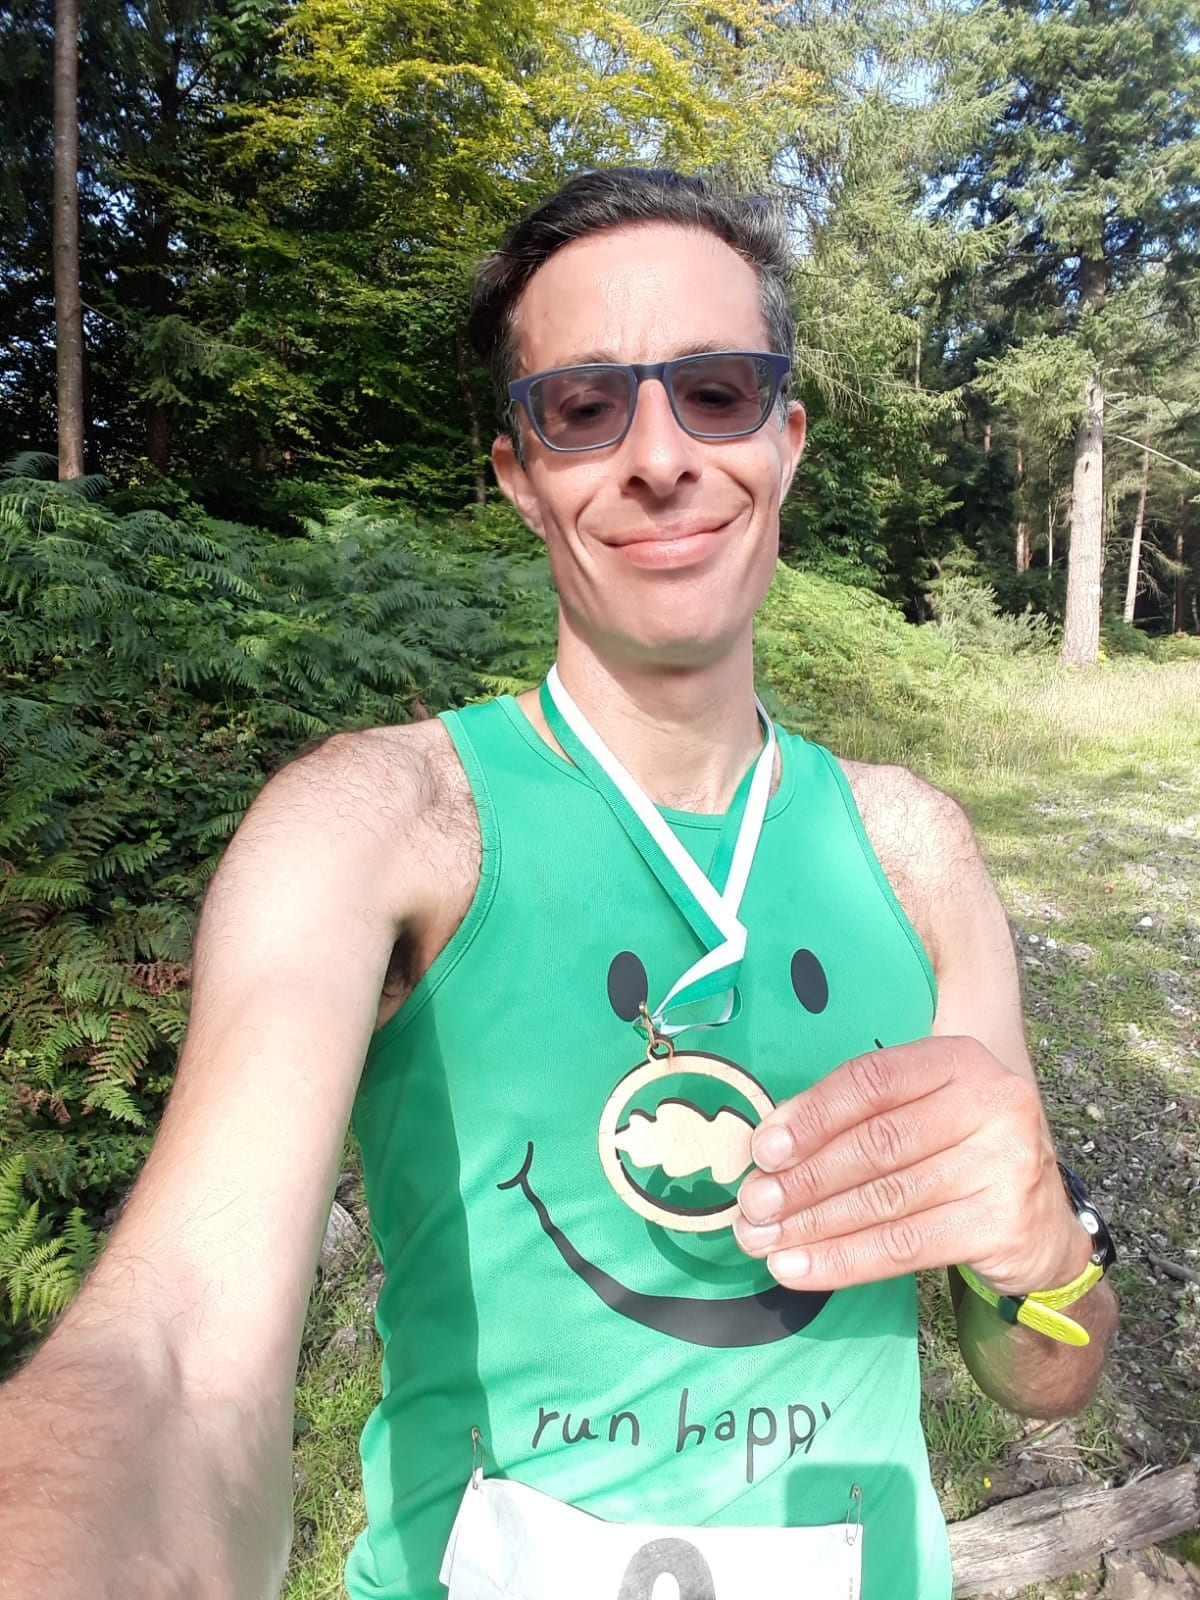 Ross Wayne with his 3rd Place at the Ashcombe Summer Trails 5k